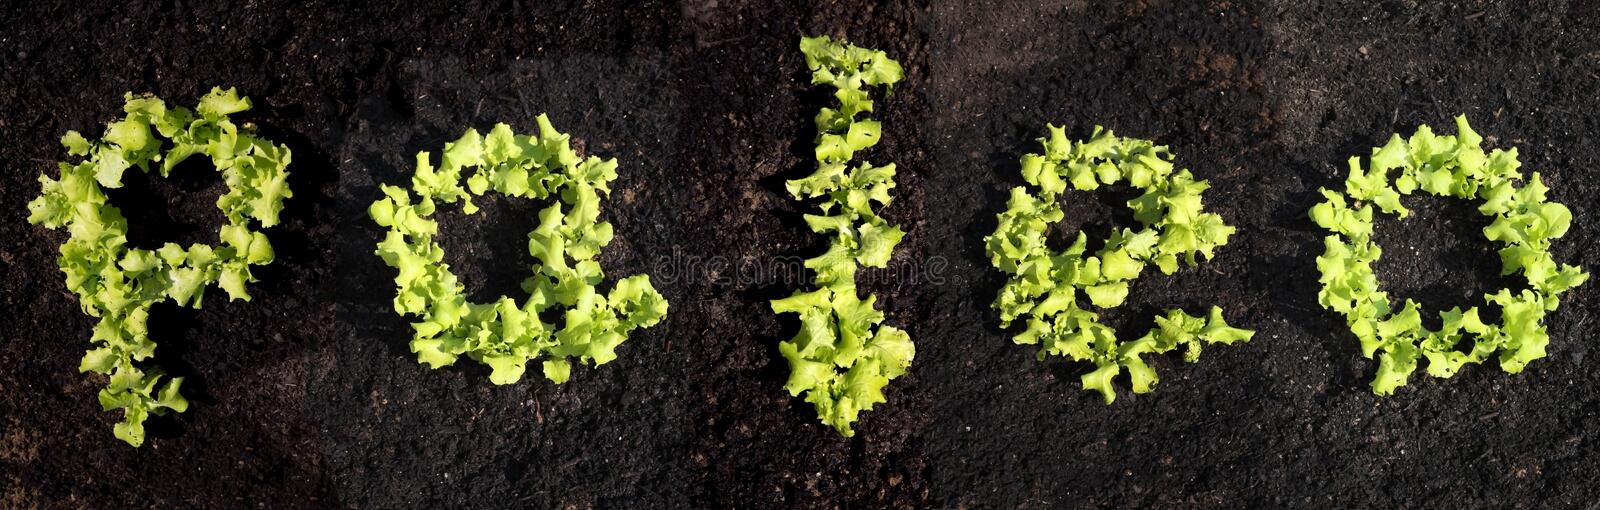 Word paleo with lettuce. Word paleo with growing lettuce royalty free stock image